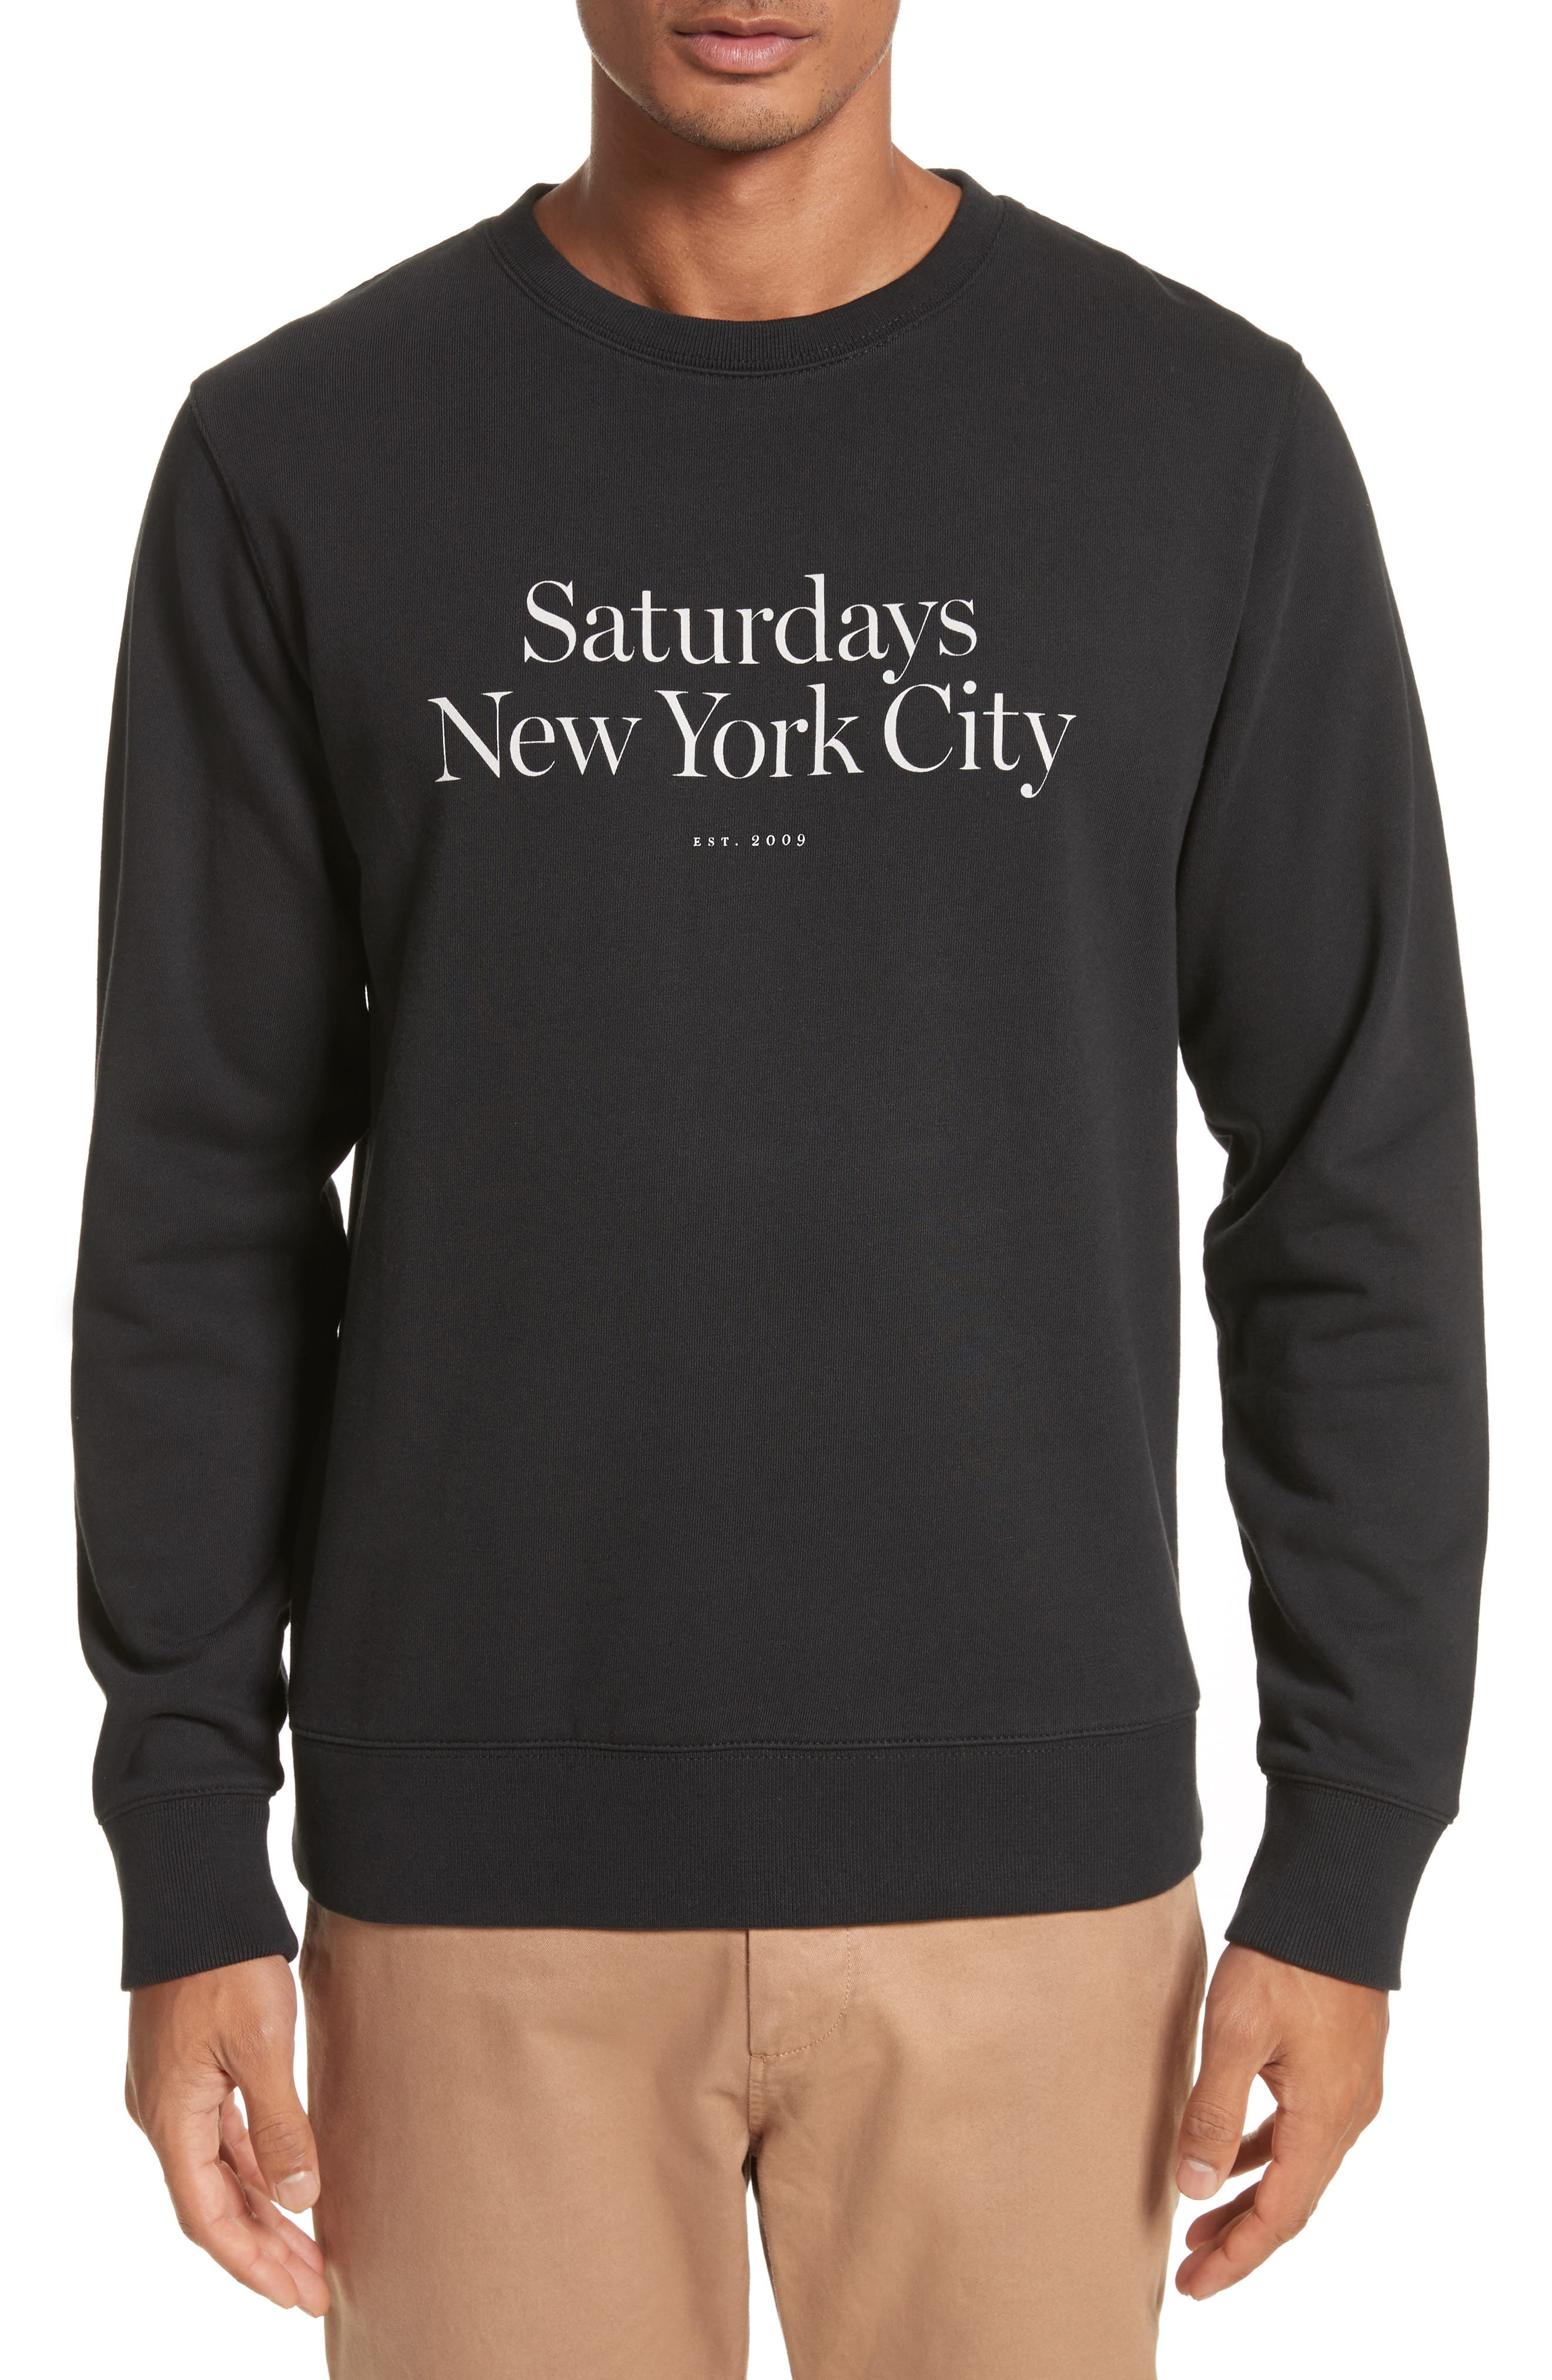 Alternate Image 1 Selected - Saturdays NYC Bowery Miller Graphic Sweatshirt